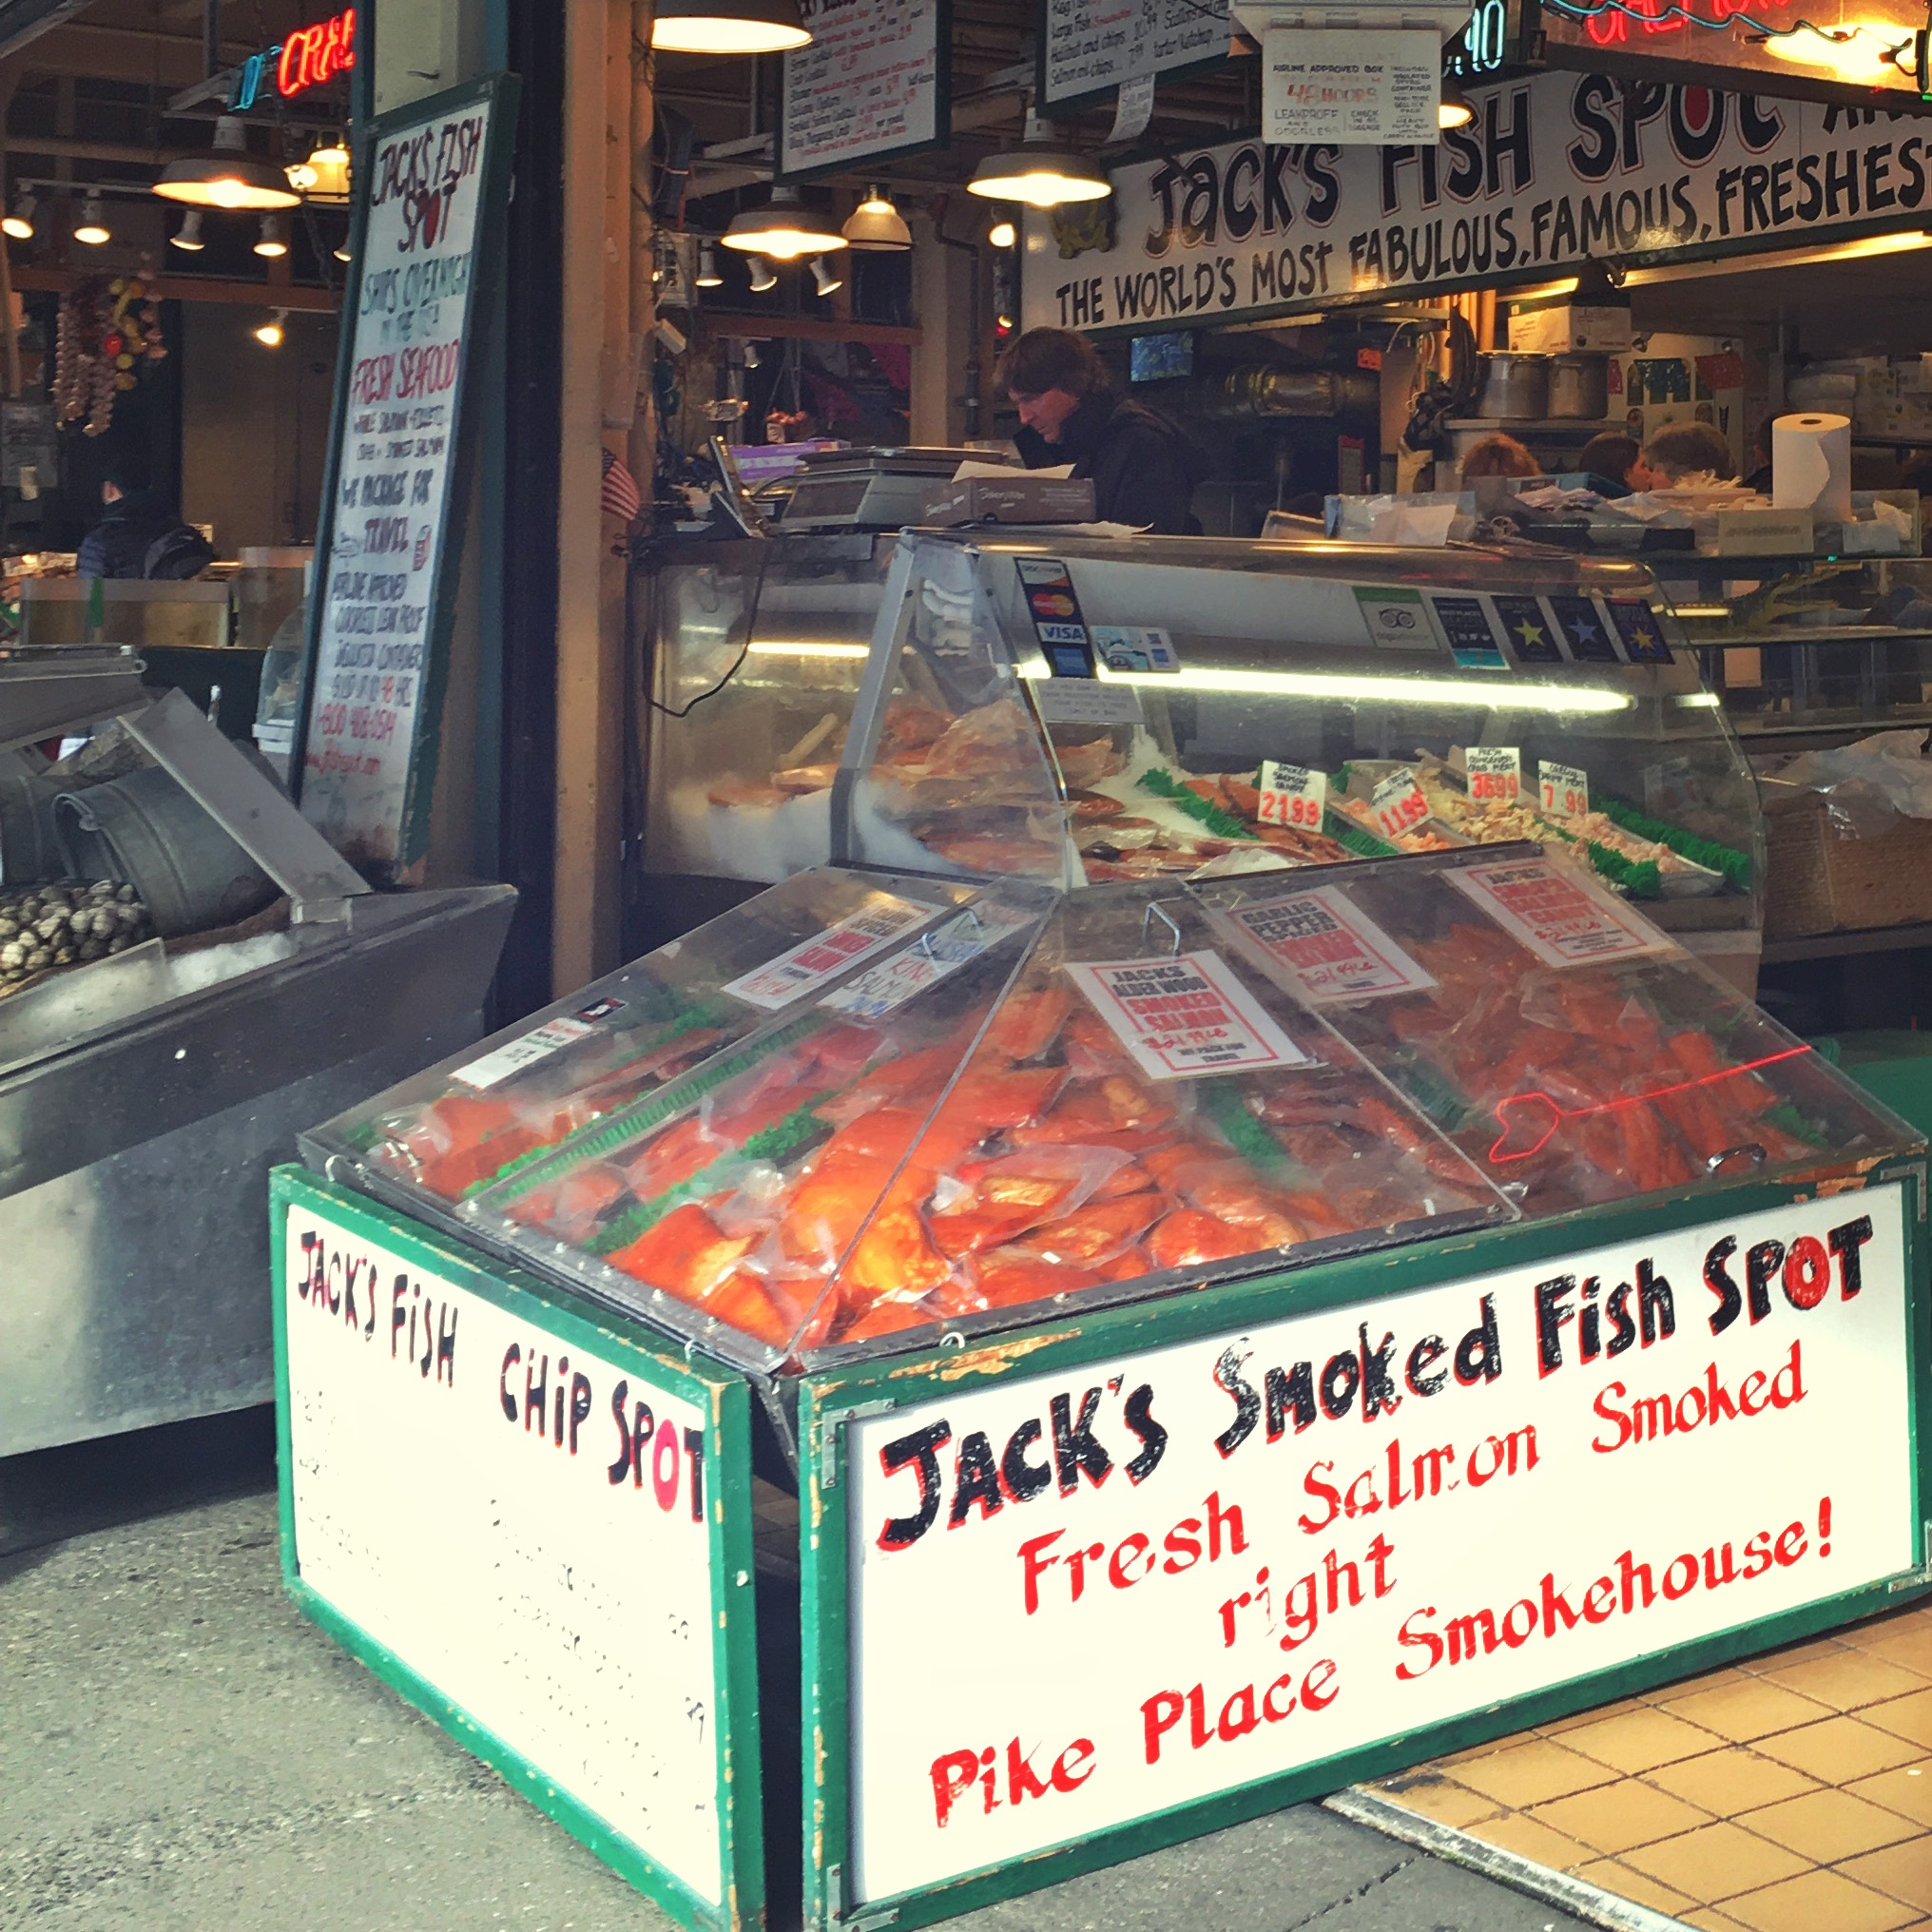 Eat Fish in Pike Place Market